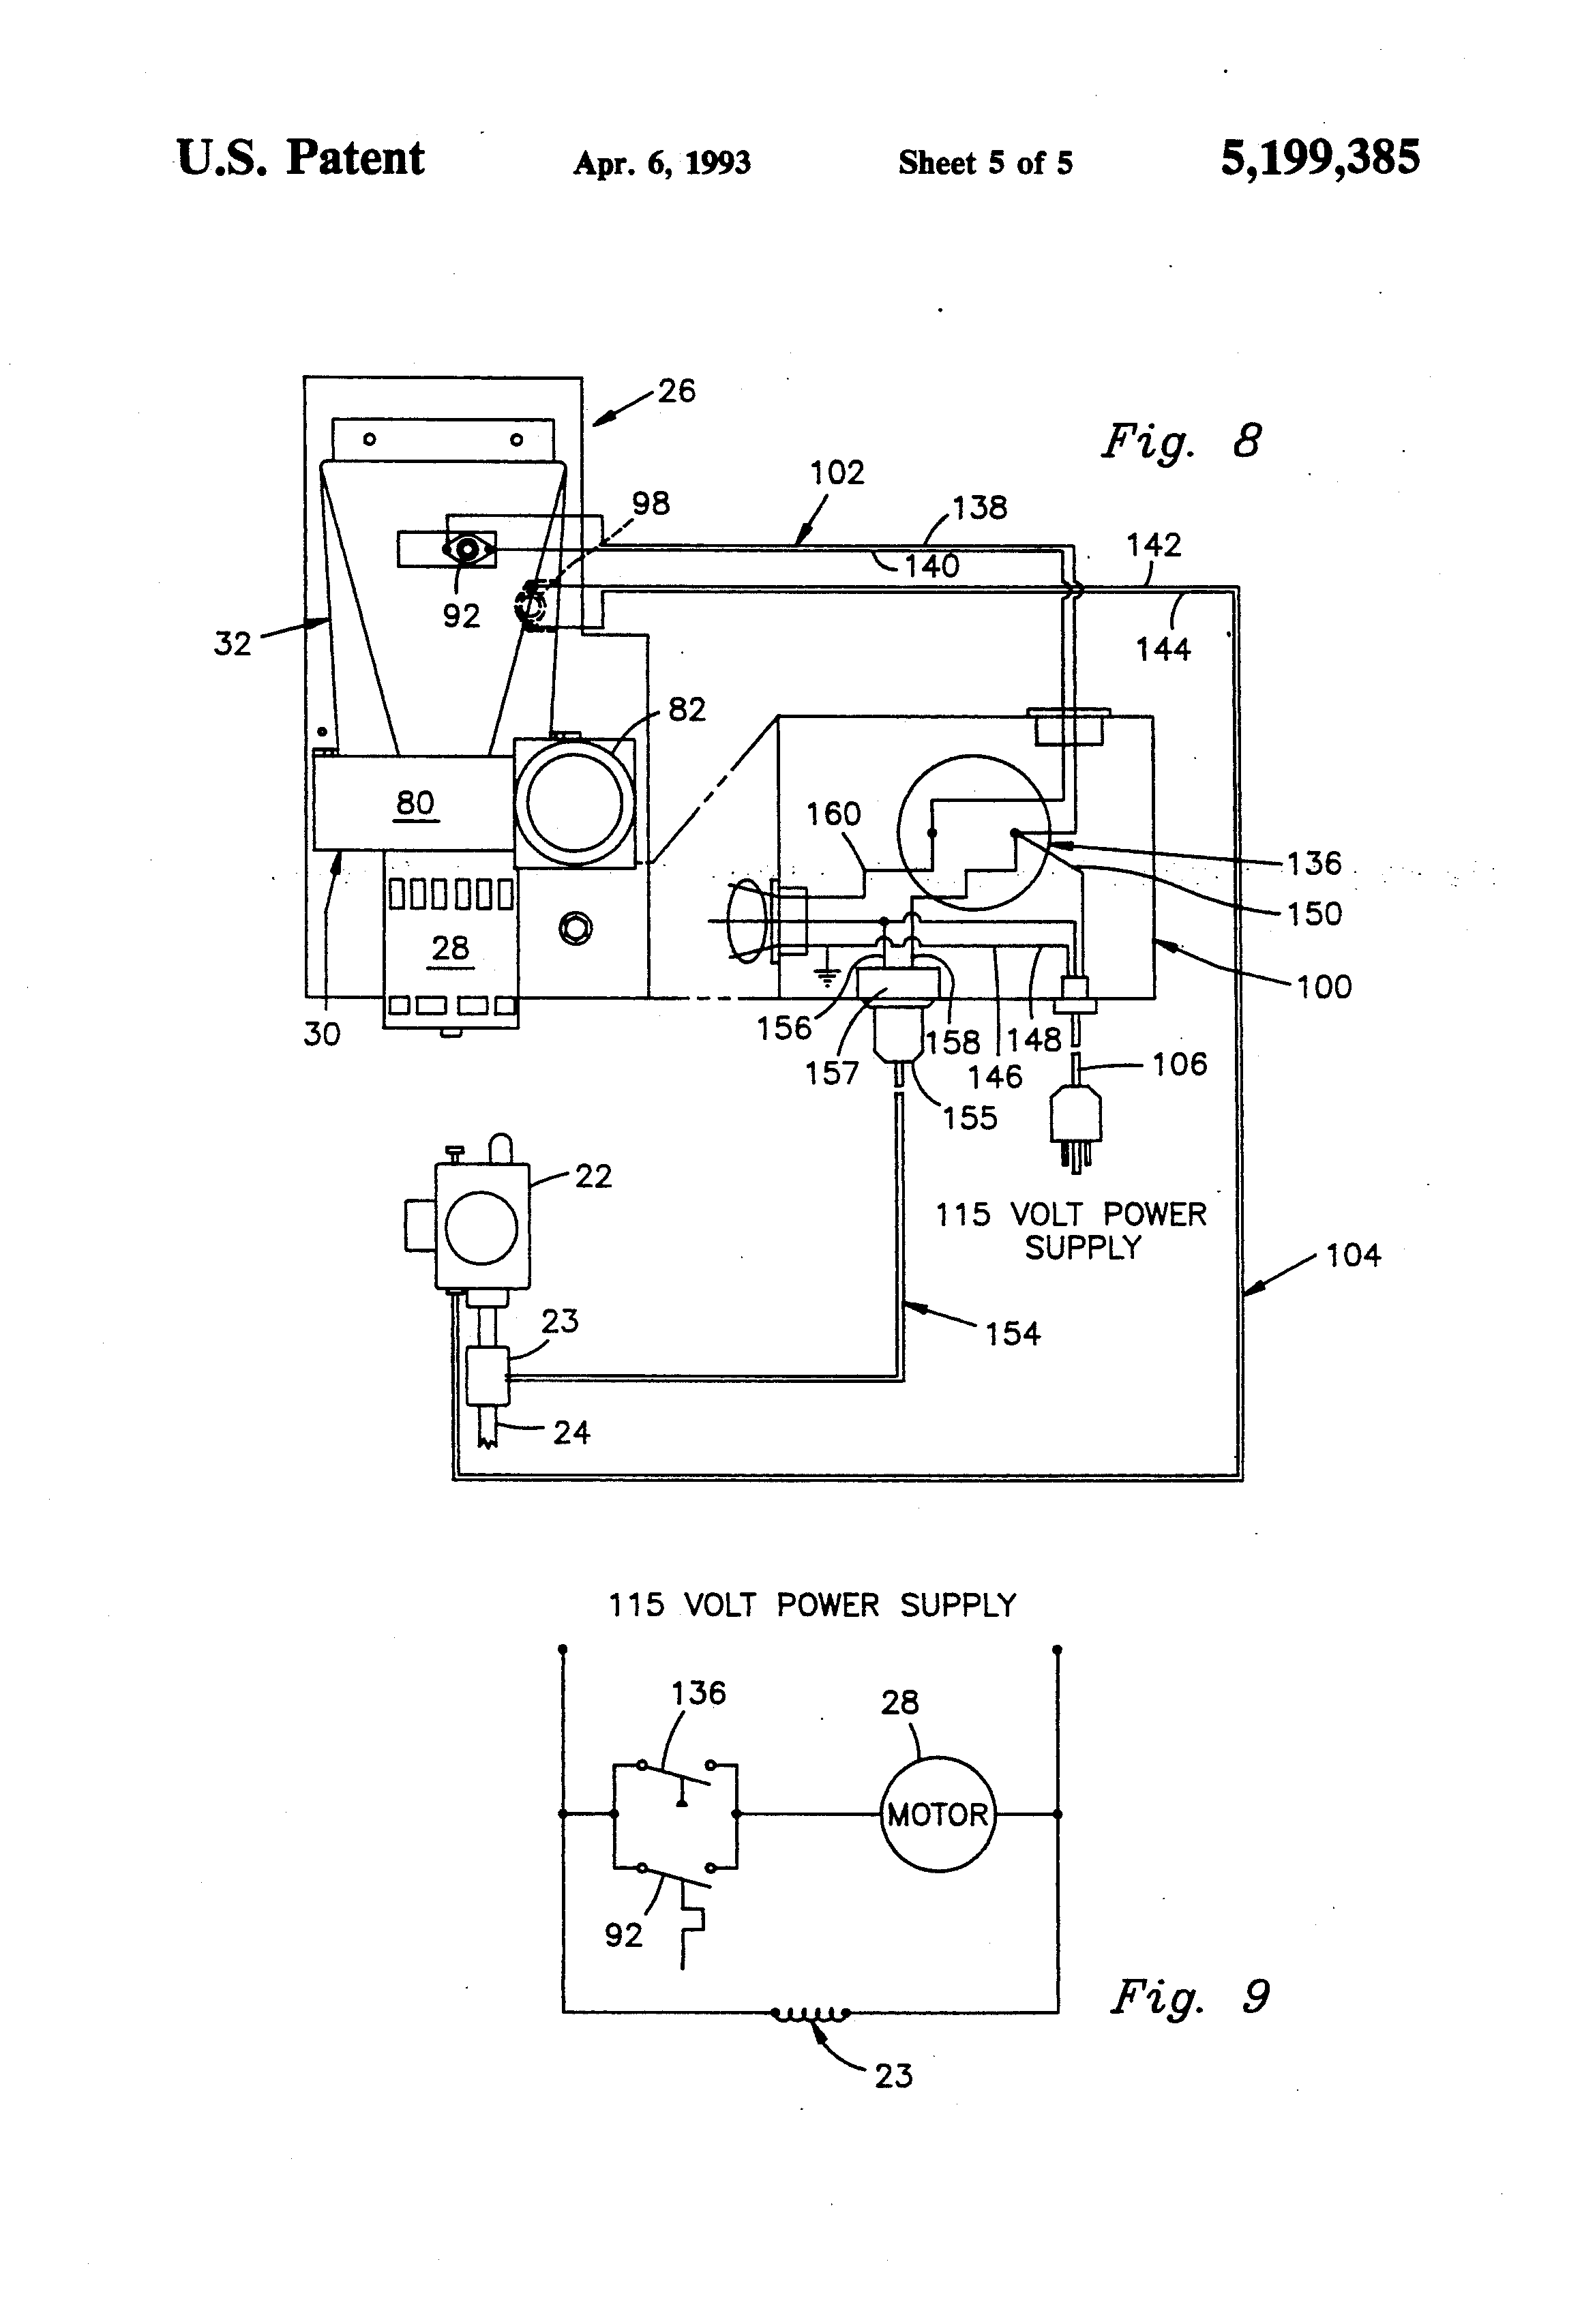 modine fan wiring diagram patent us5199385 - through the wall vented water heater ... #3